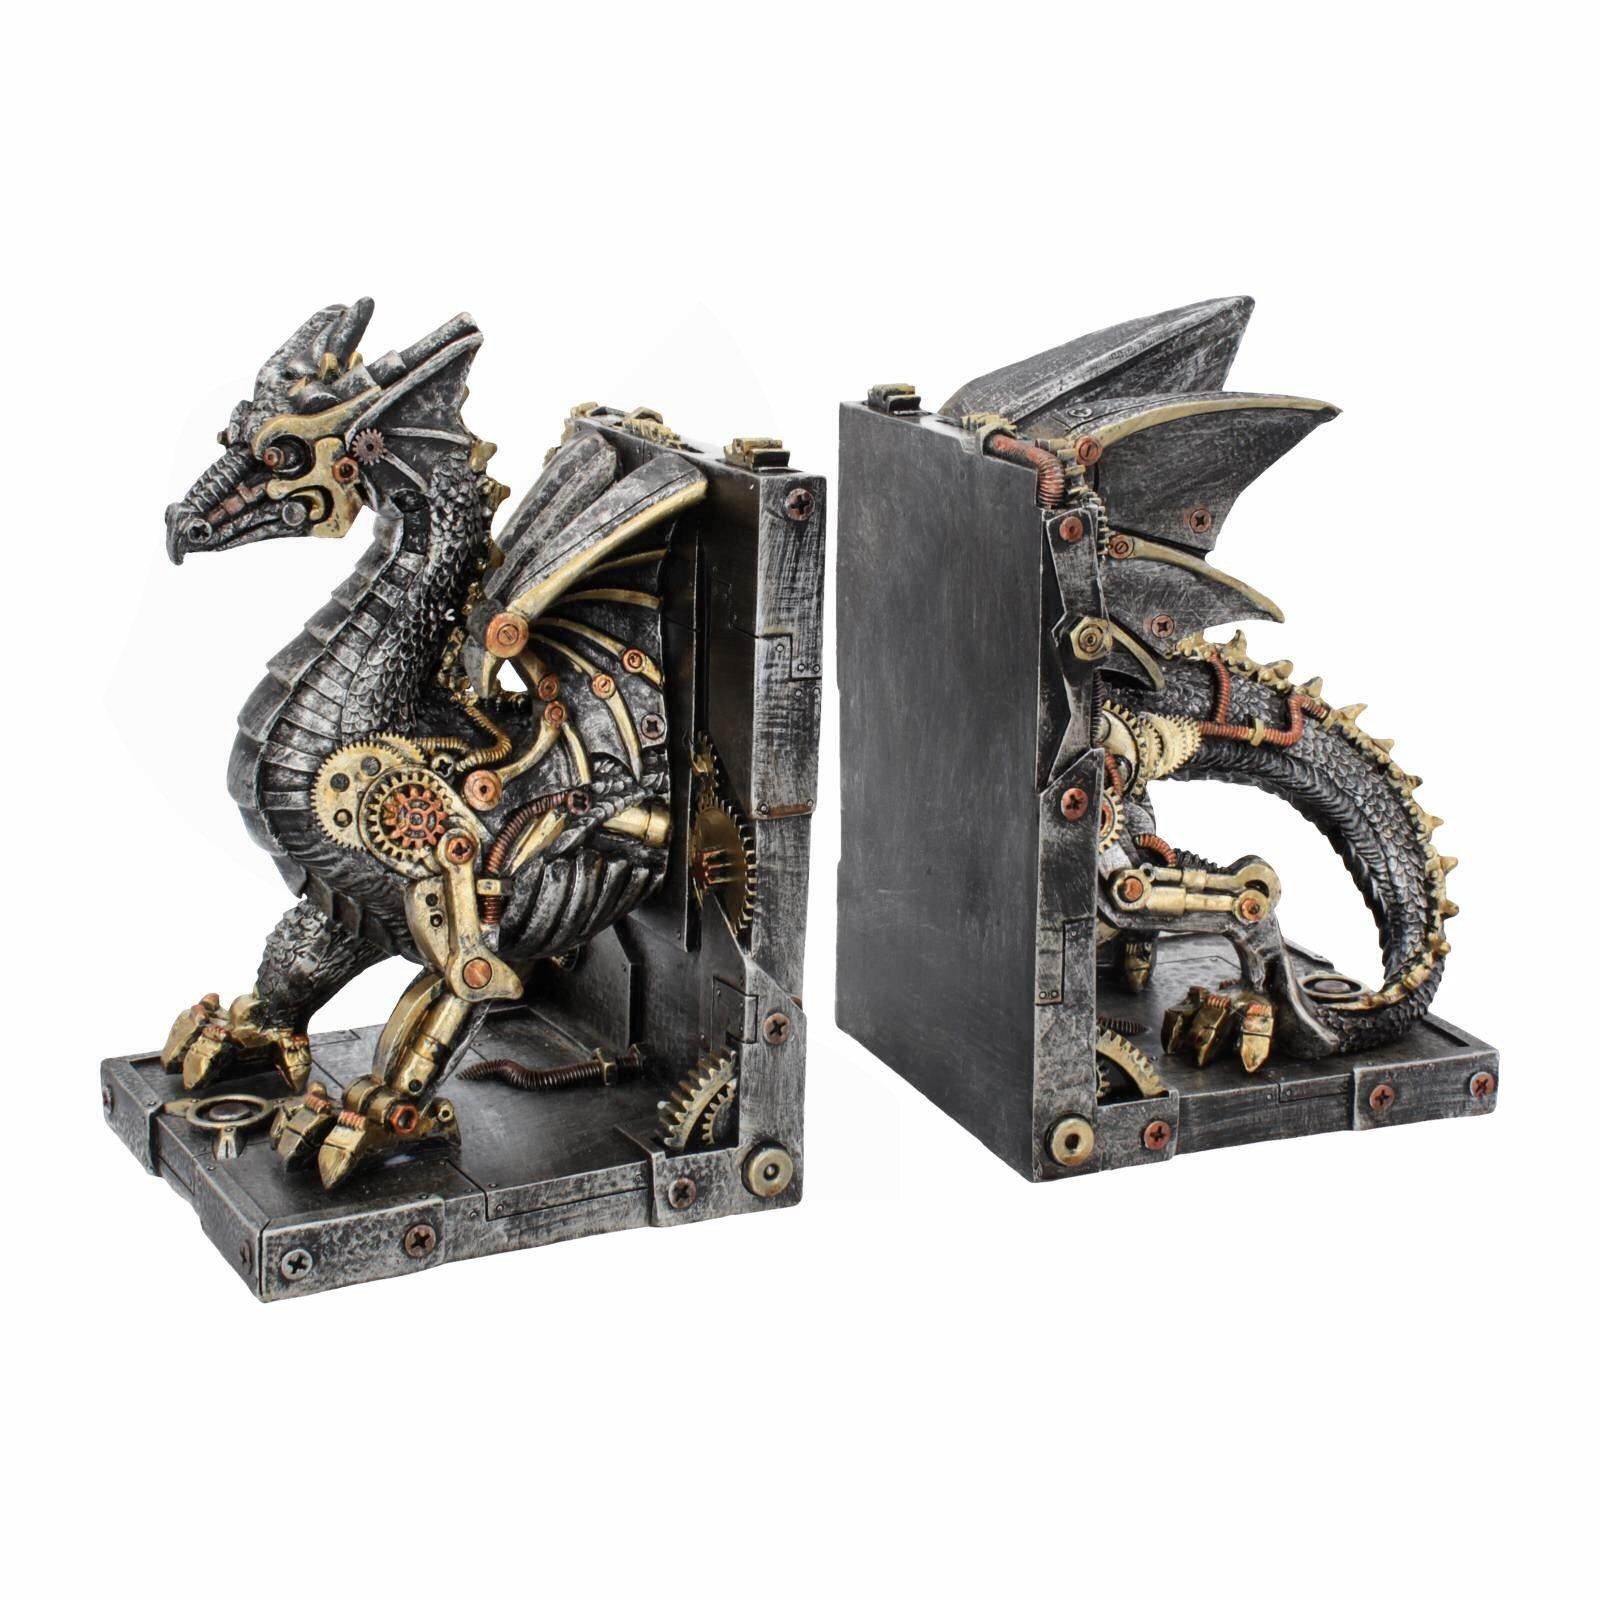 Dracus Machina Bookends - Steampunk Dragon - Nemesis Now U4189M8